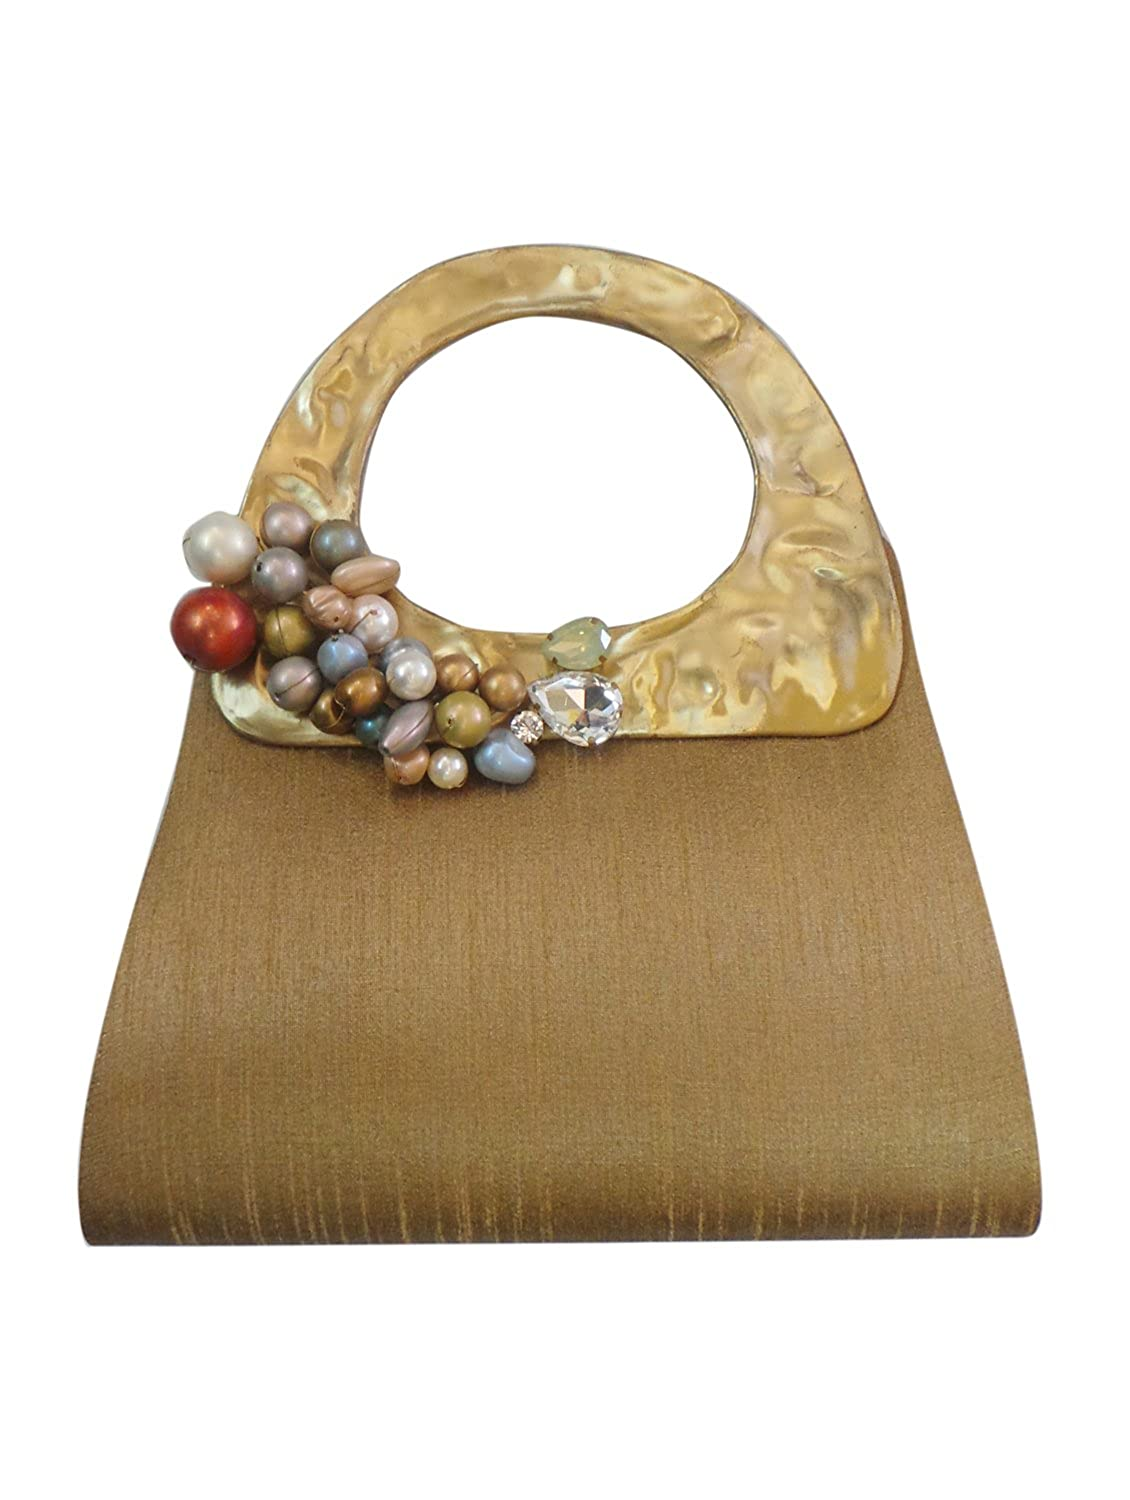 Bhamini Gold Quirky Raw Silk Bag with Grape Brooch鈥